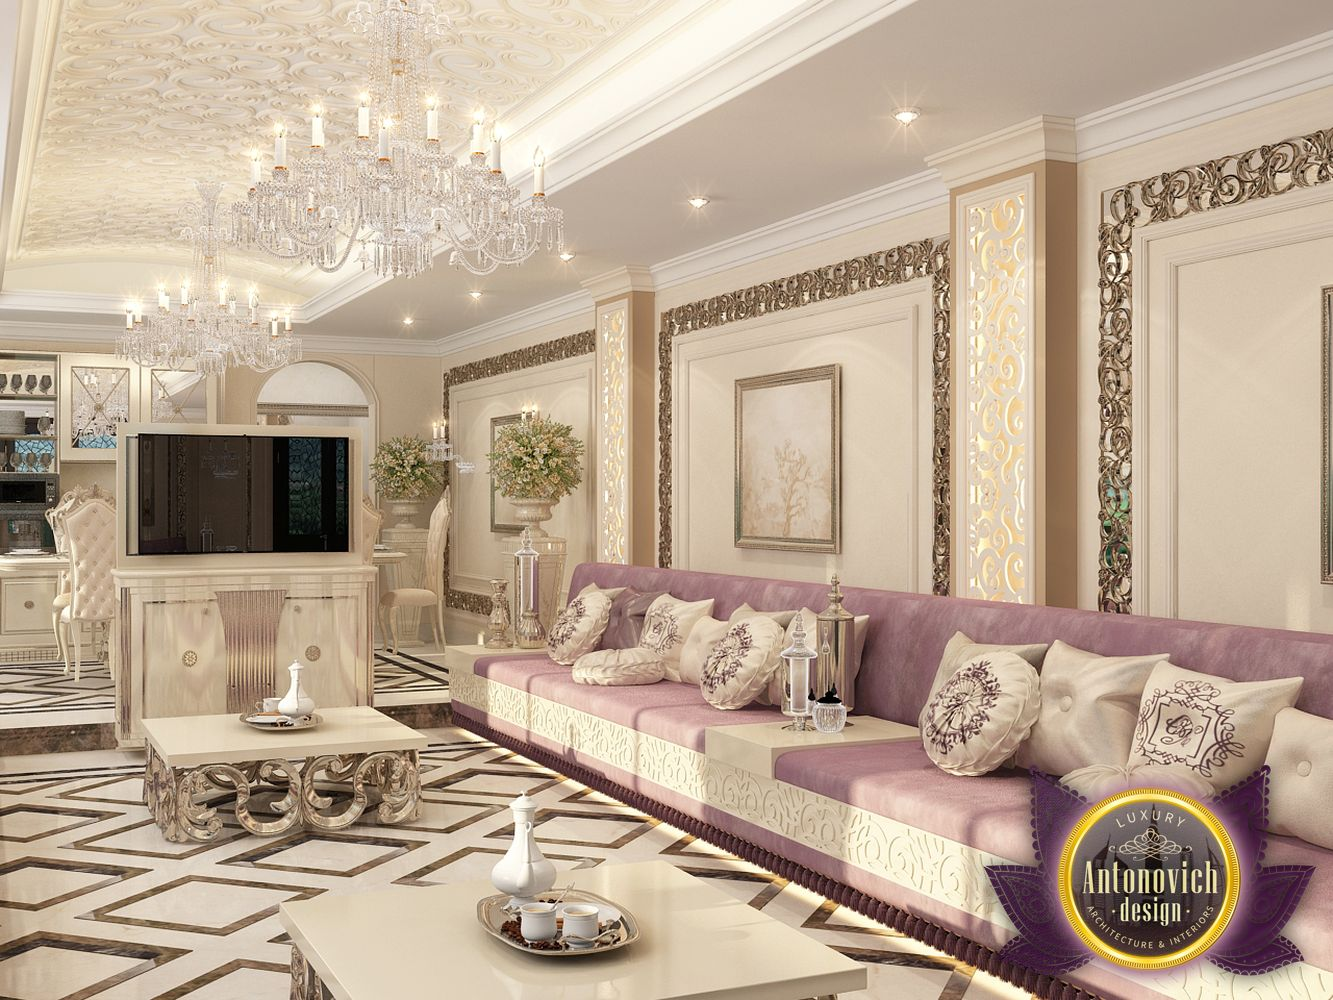 Kenyadesign: Living room design in Kenya of Luxury ...